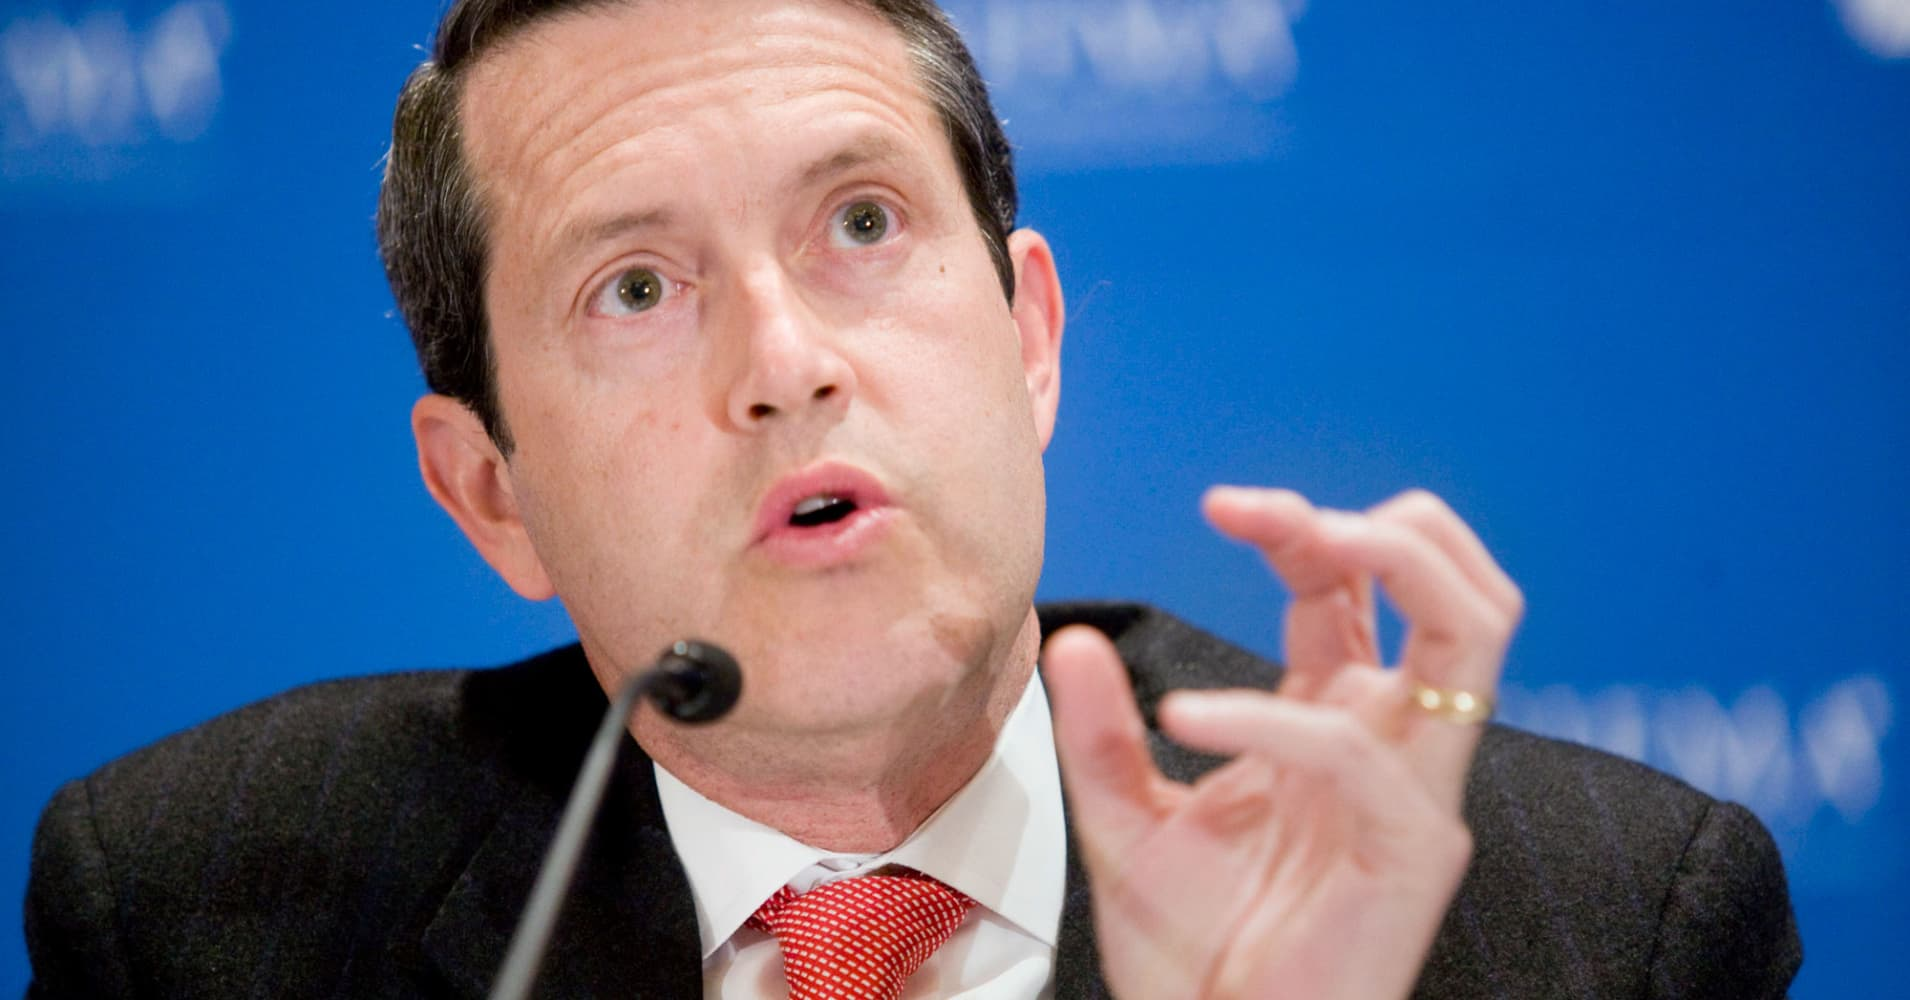 Fed's Quarles pushes for gradual rate hikes, review of crisis-era bank regulations